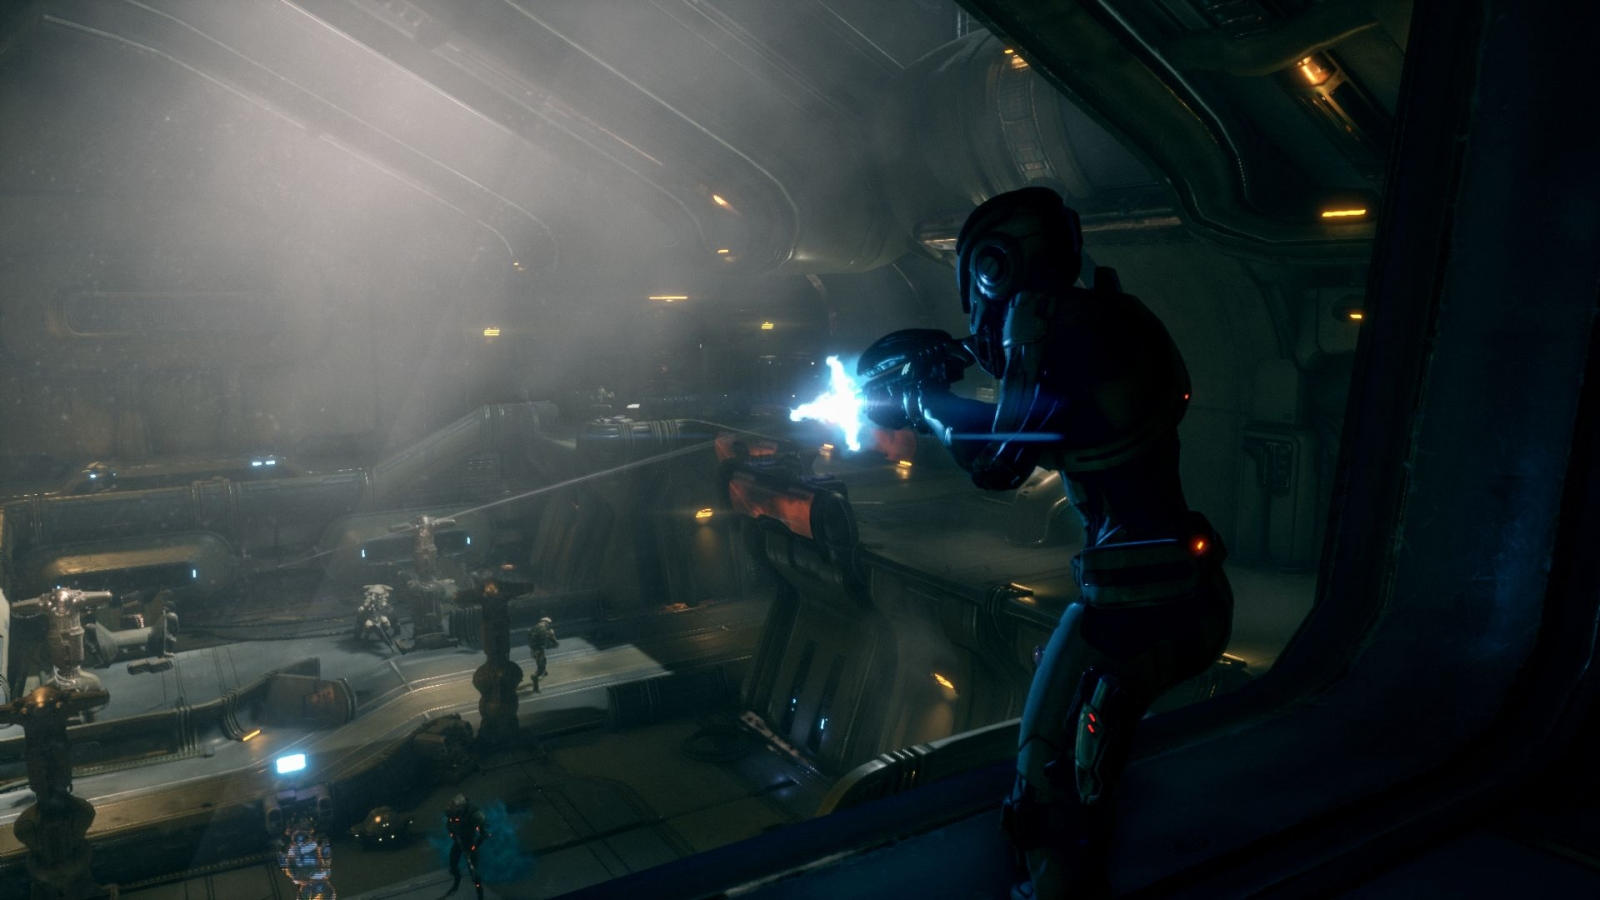 Mass Effect Andromeda 1920x1080: BioWare Explains Why Mass Effect Andromeda Multiplayer